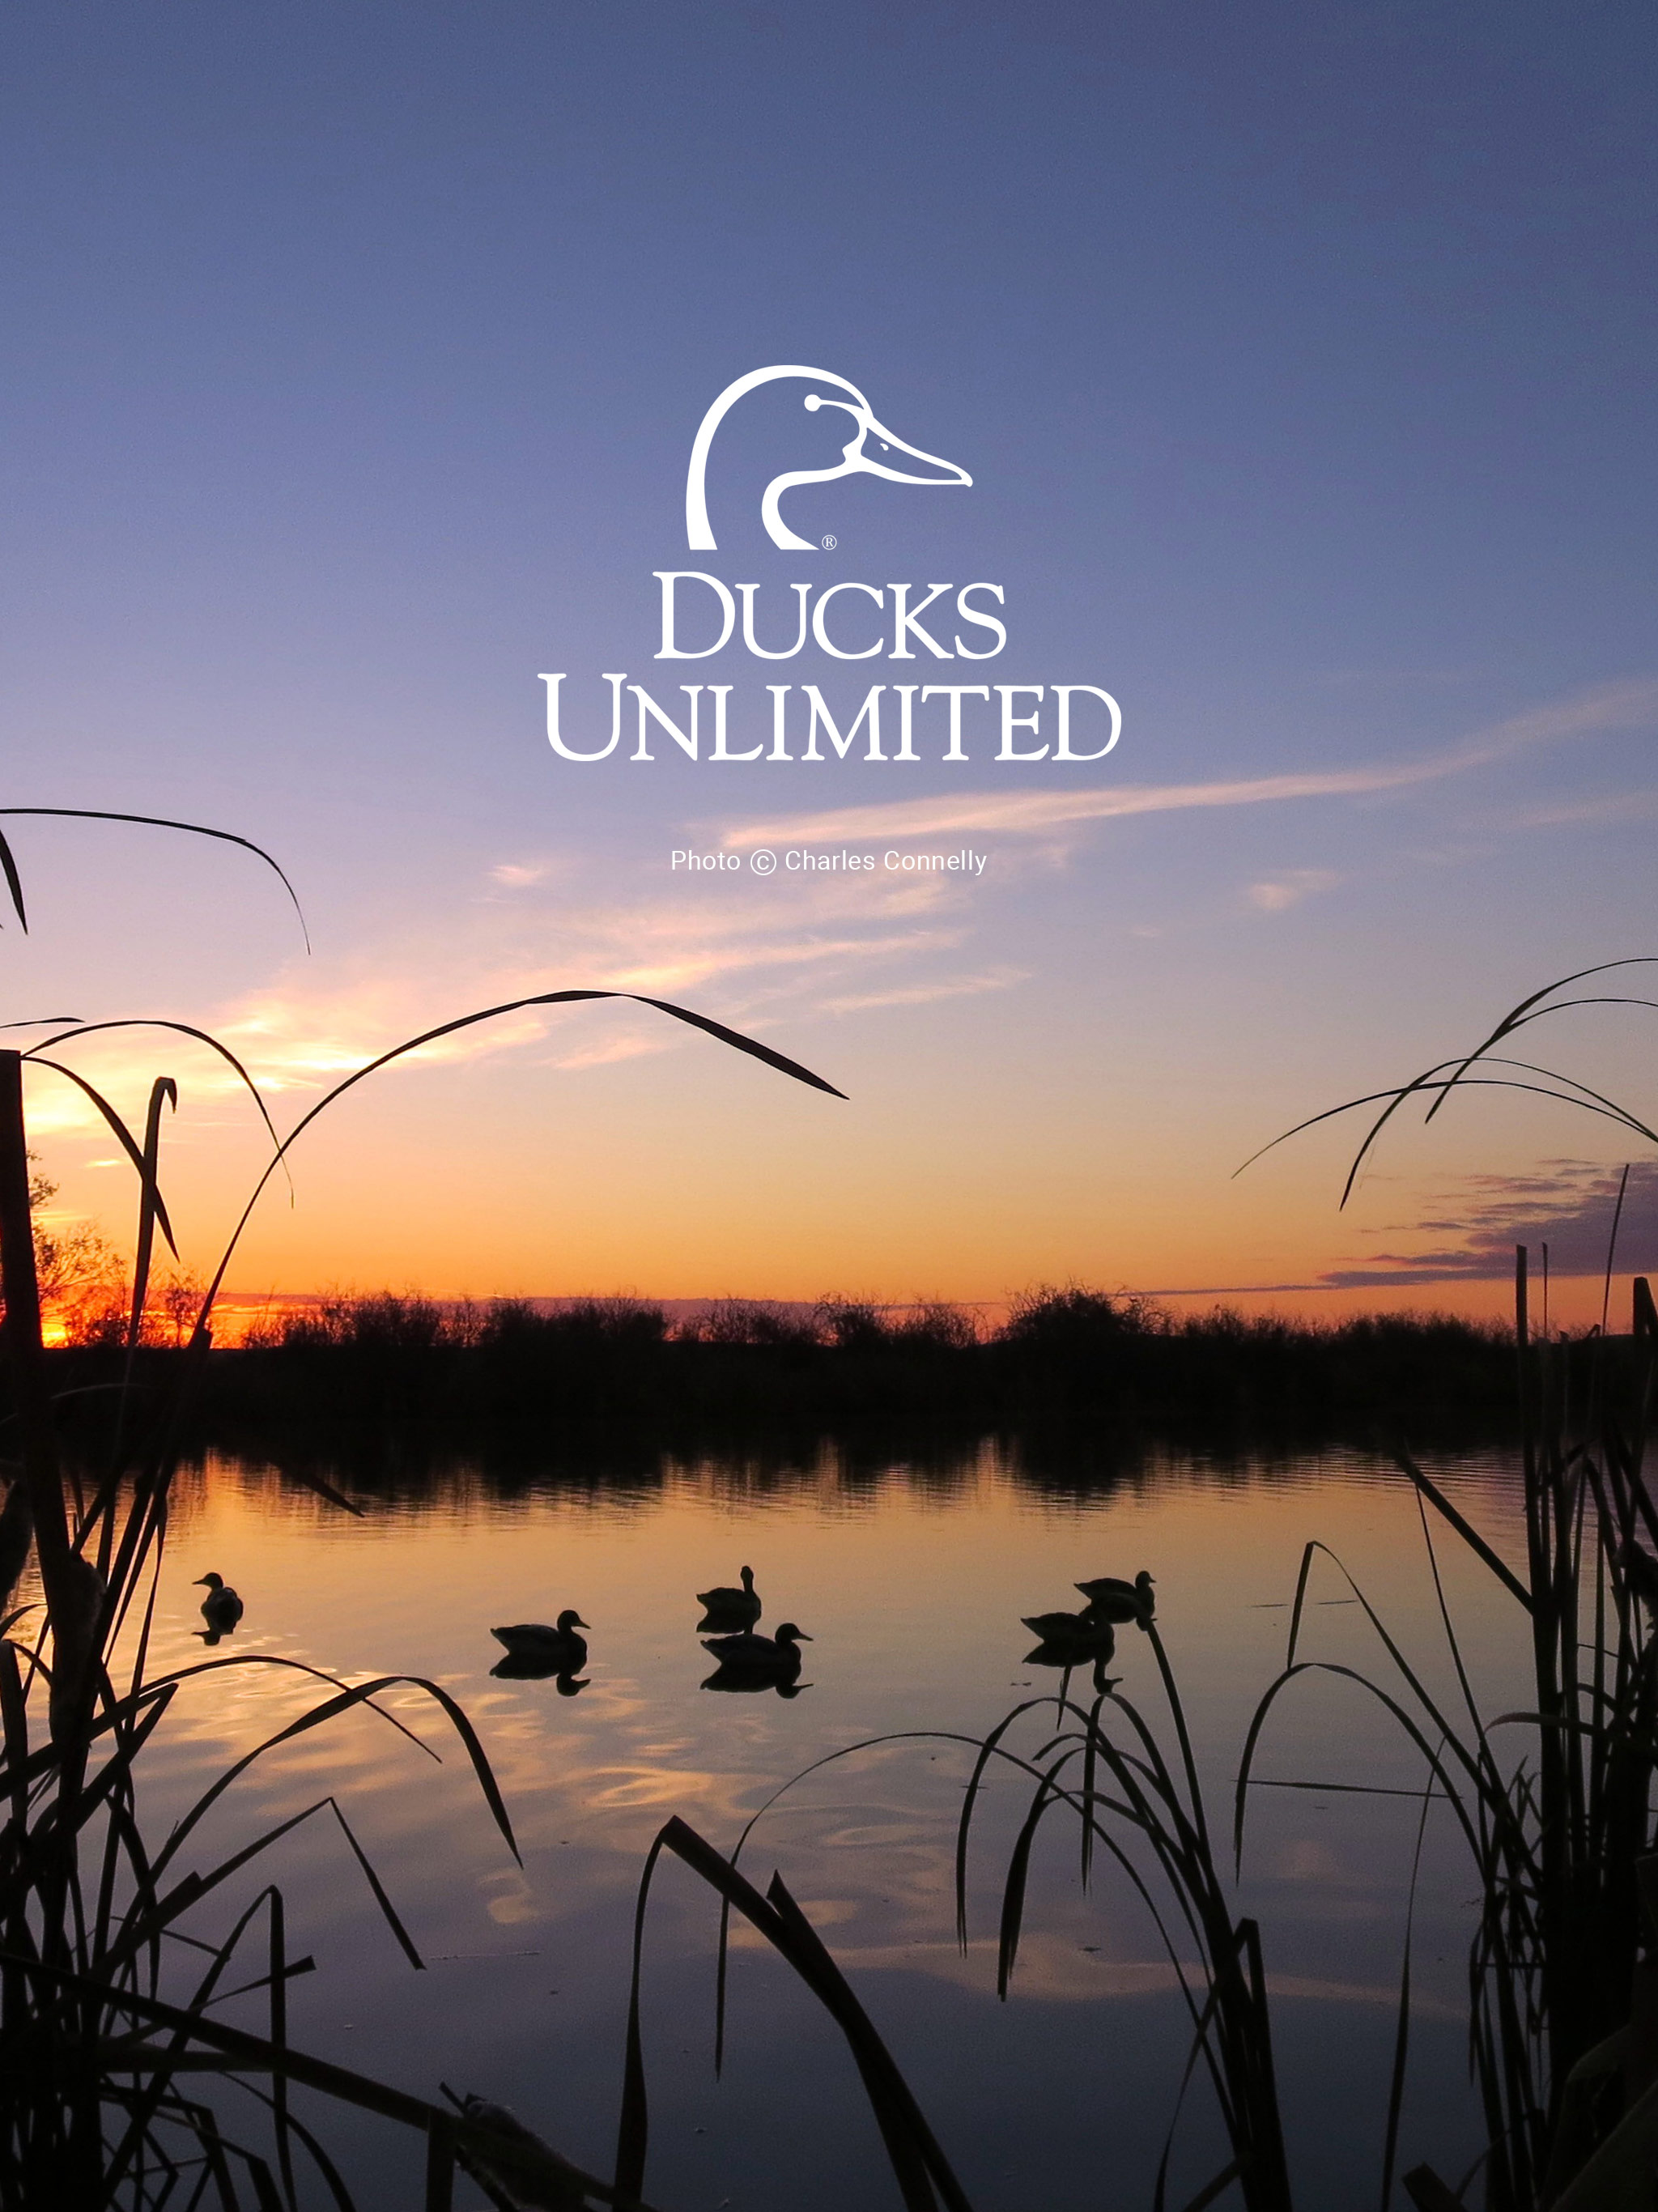 ducks unlimited mobile wallpaper